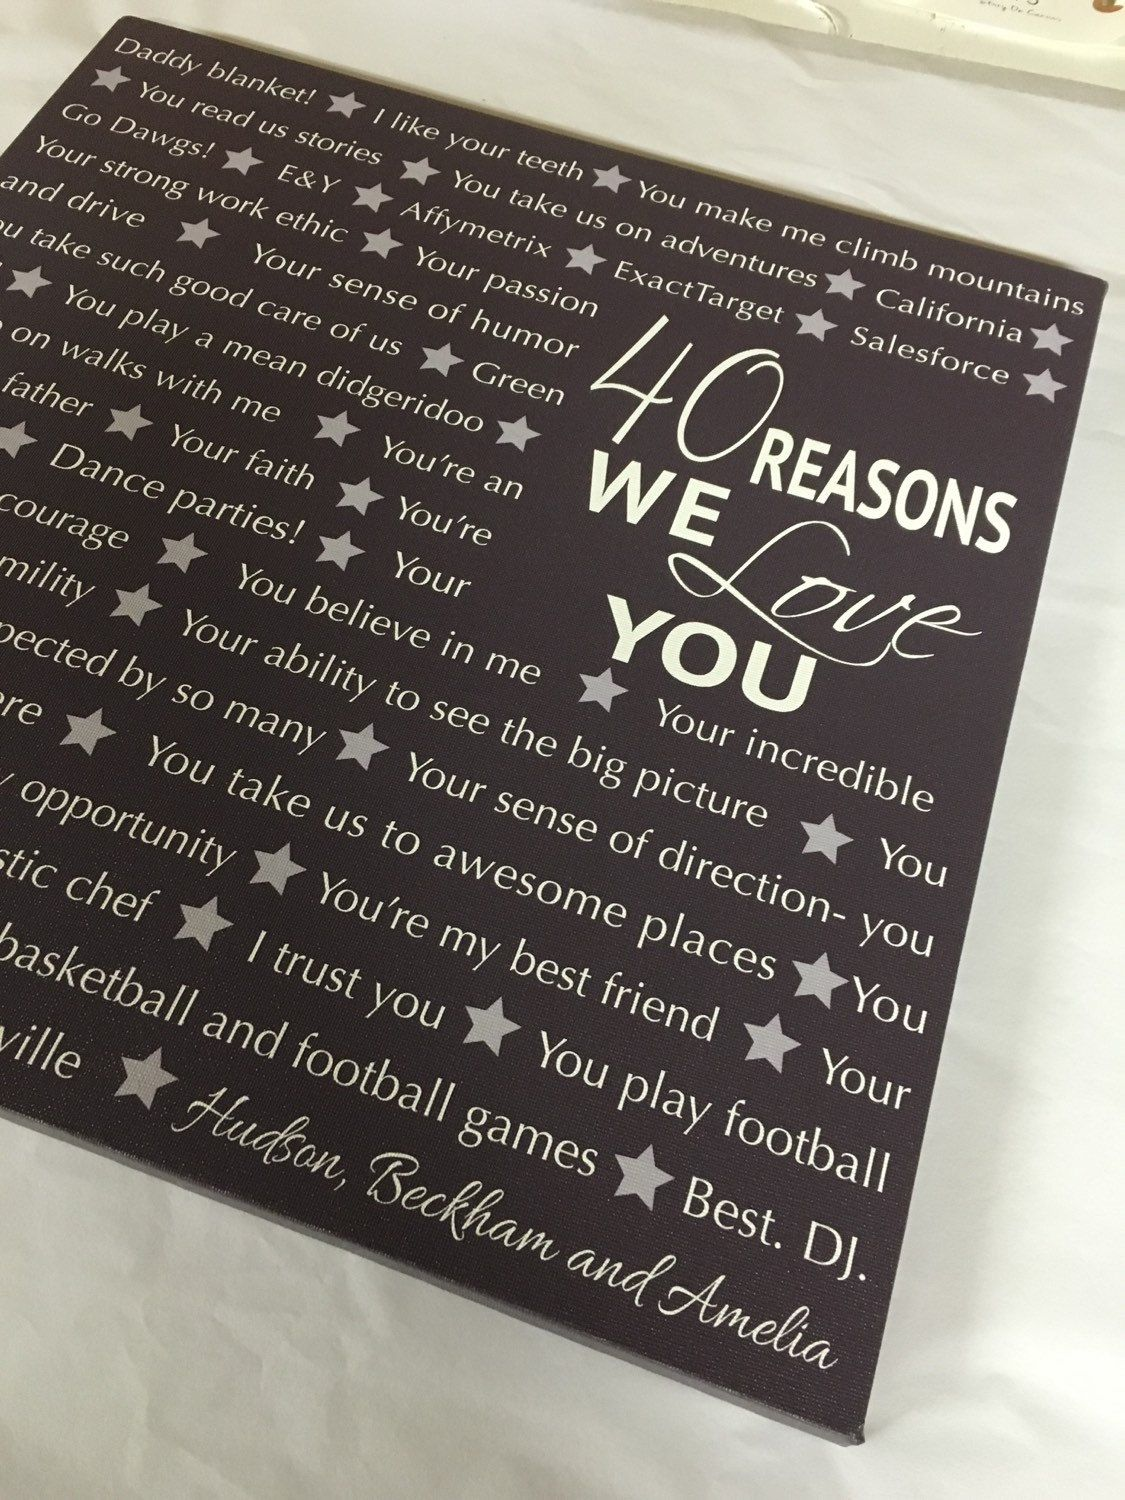 Reasons we love you, 16th, 21st, 30th, 40th, 50th, 60th